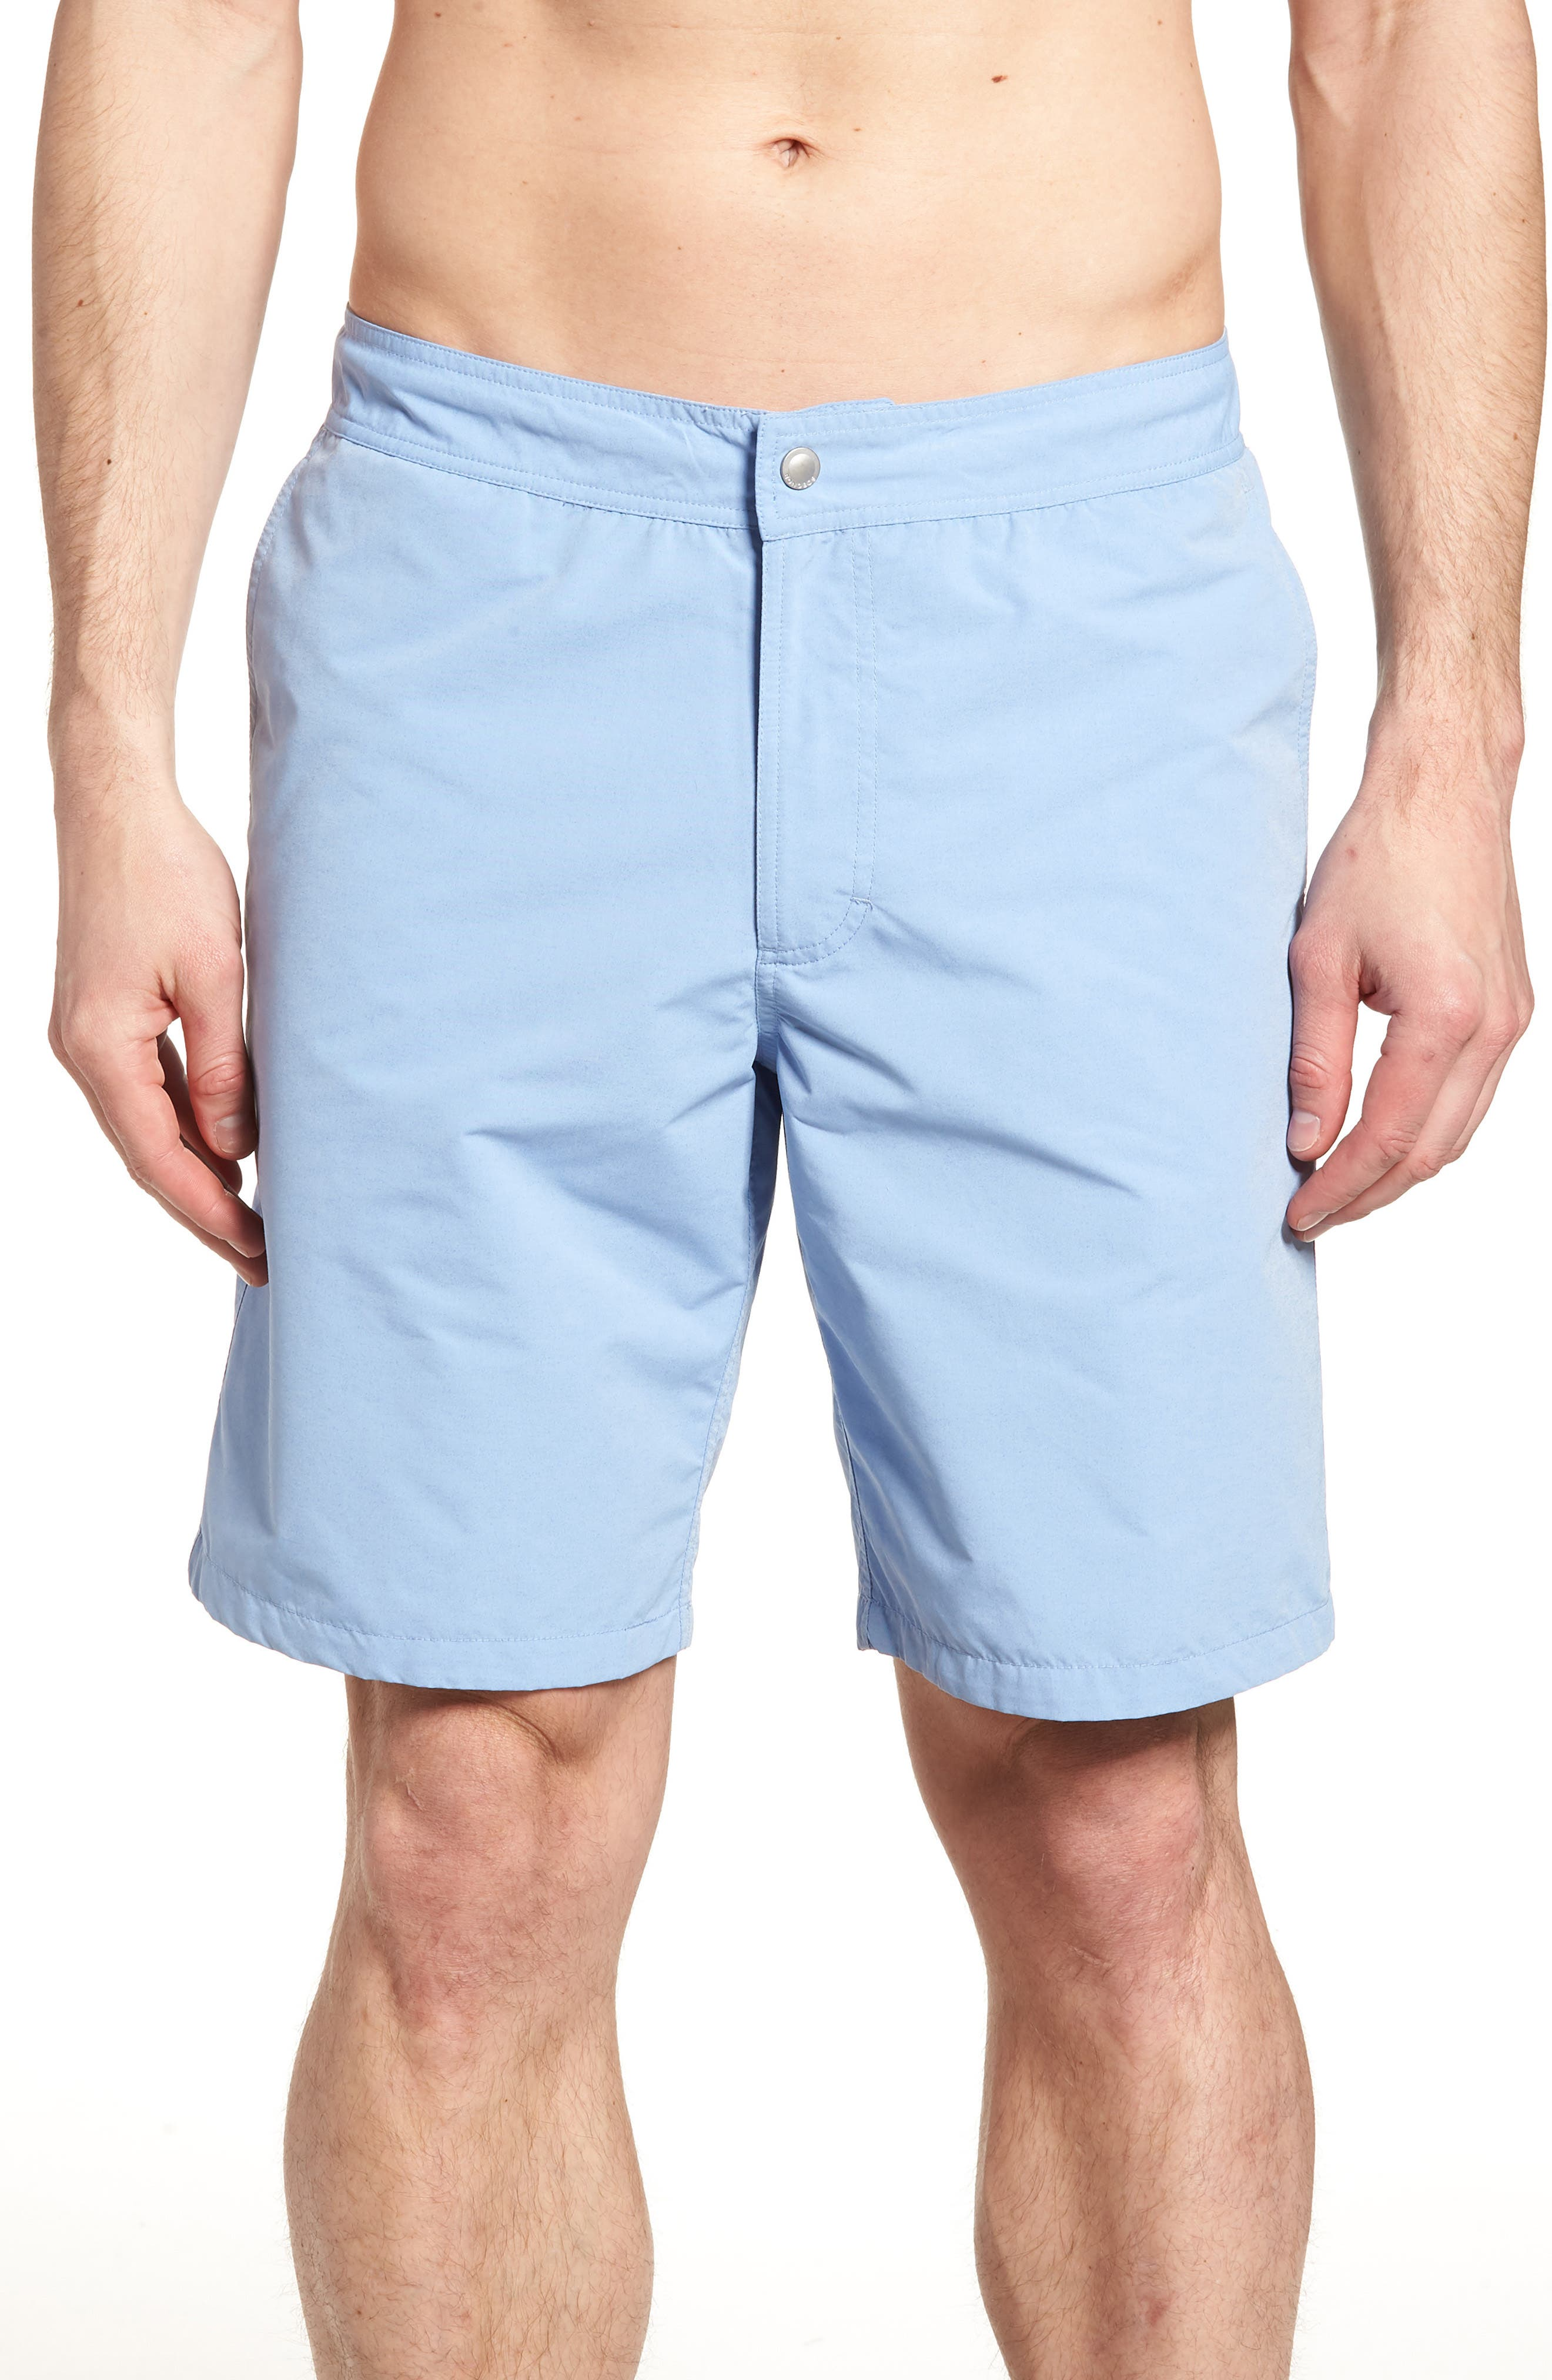 Banzai 9-Inch Swim Trunks,                         Main,                         color,